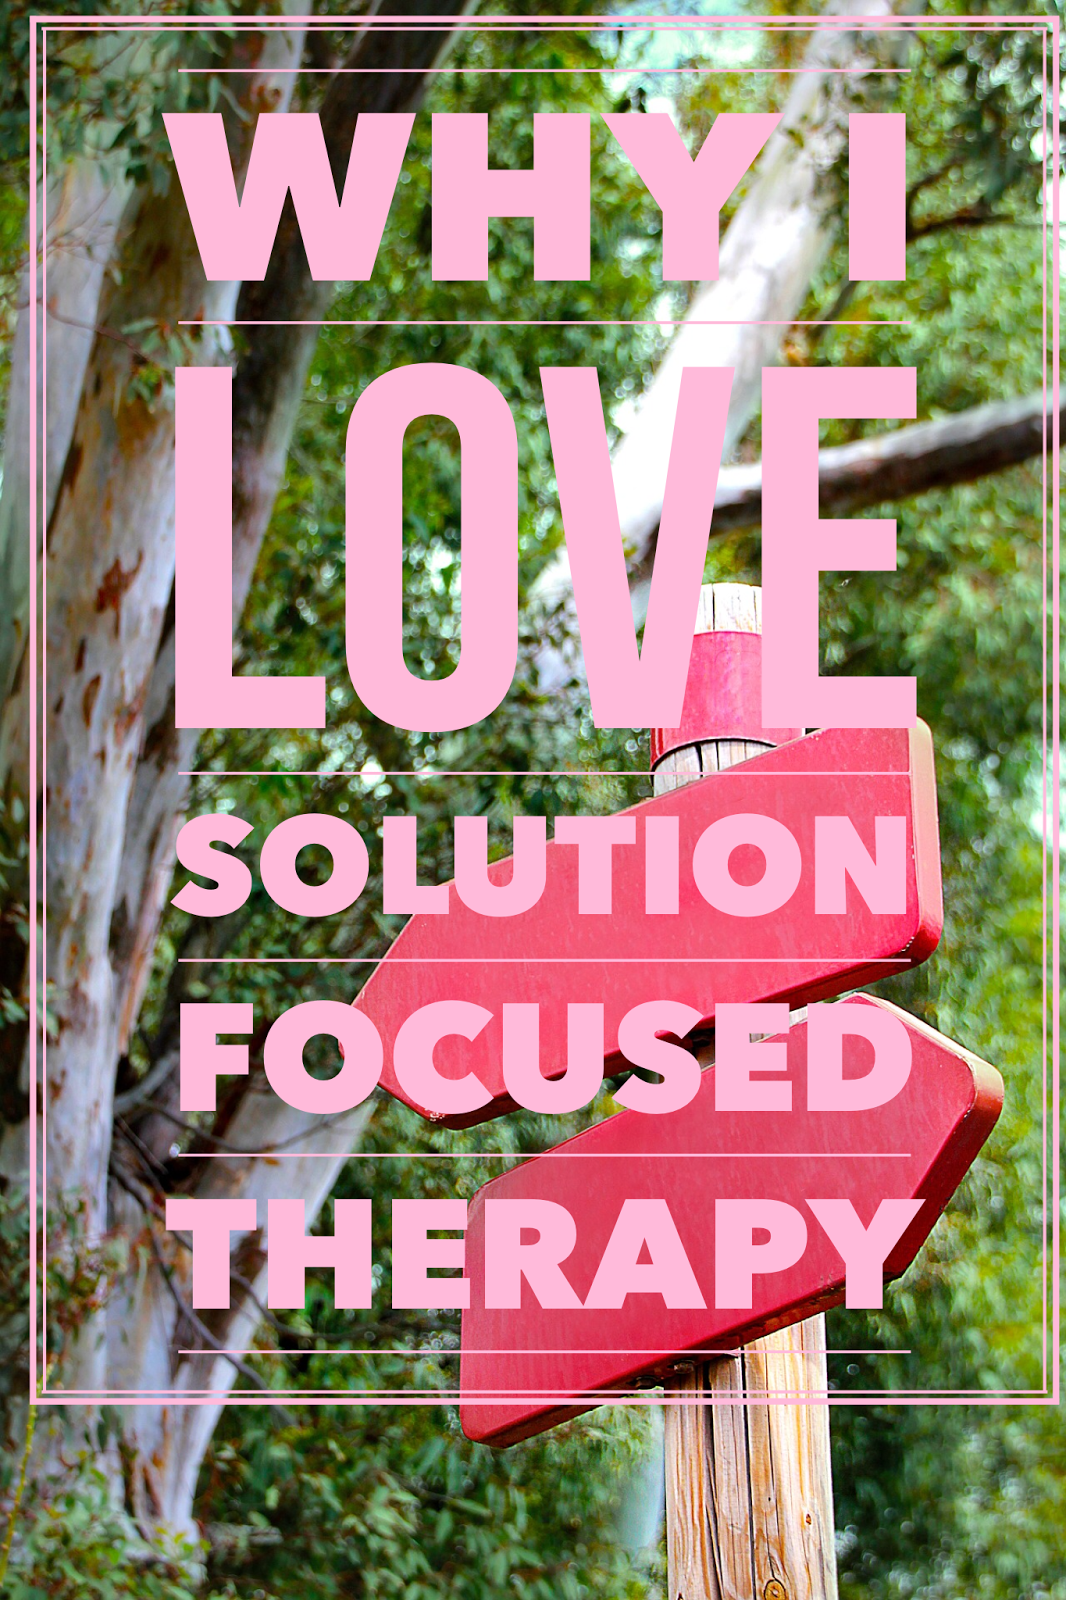 Workbooks solution focused therapy worksheets for children : Self Care Bestie: October 2017